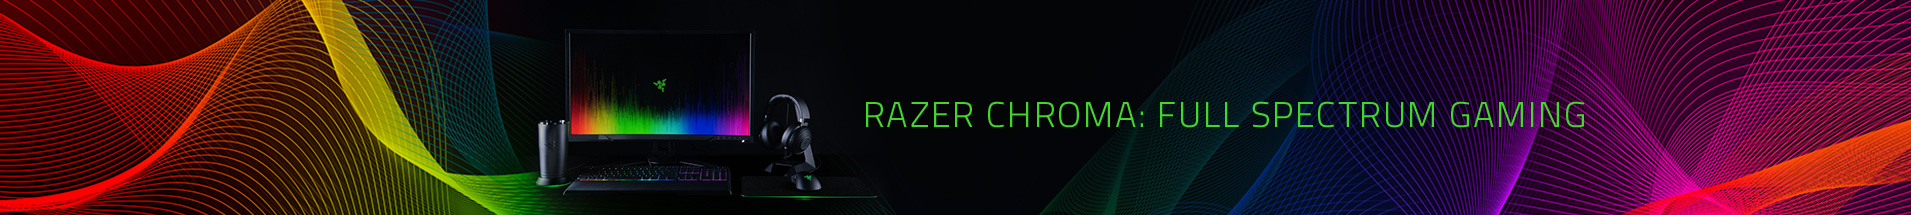 Razer Chroma: Full Spectrum Gaming